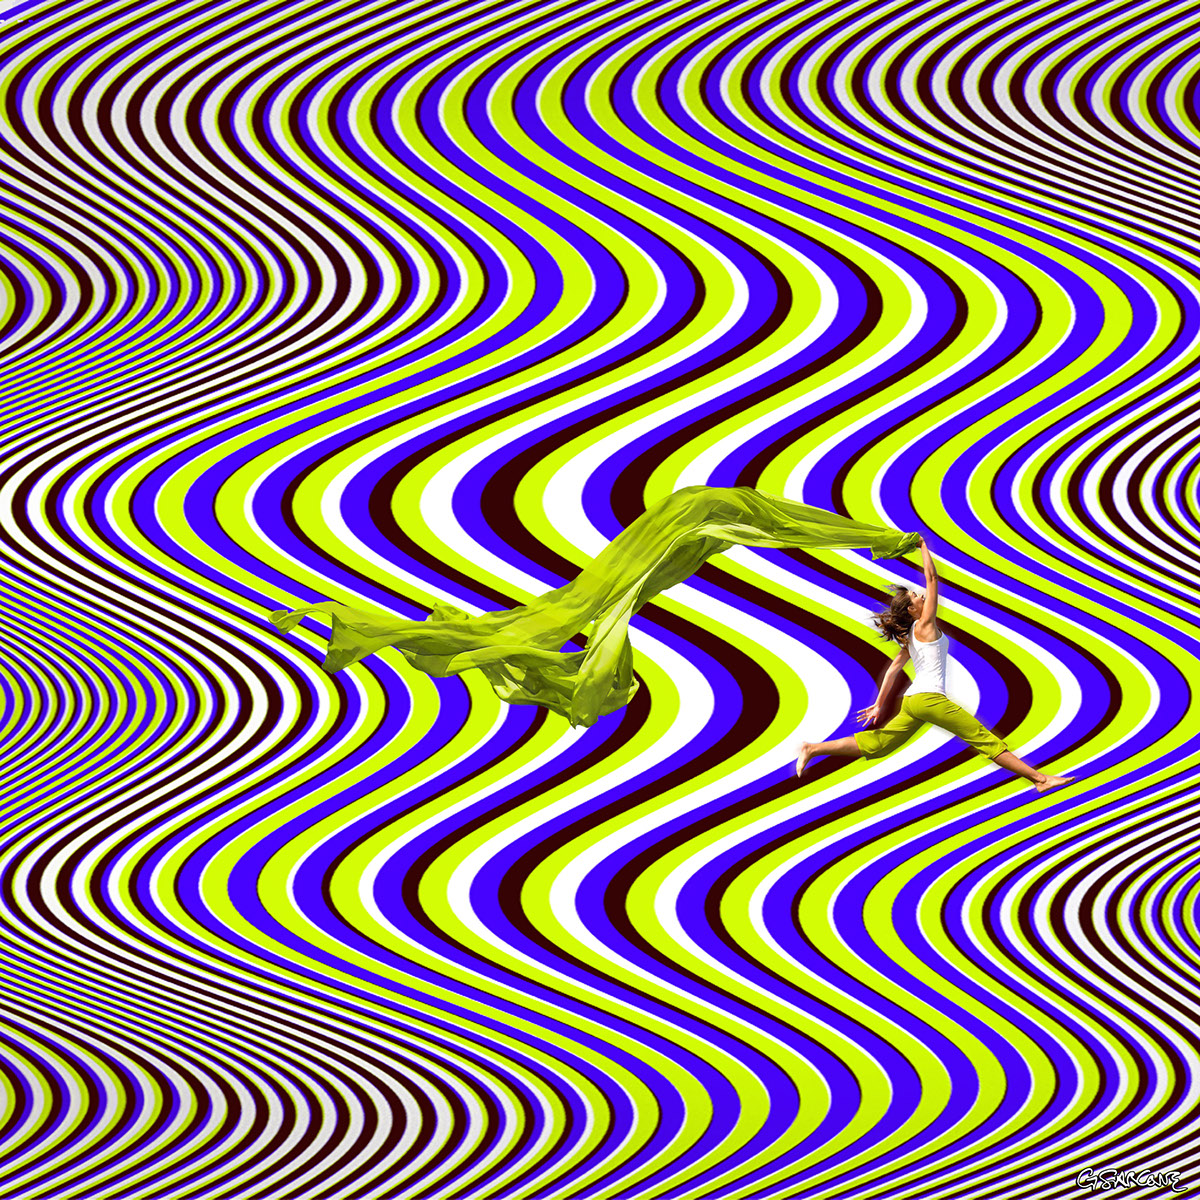 op art kinetic autokinetic gianni sarcone optical illusion visual effect collage psychedelic